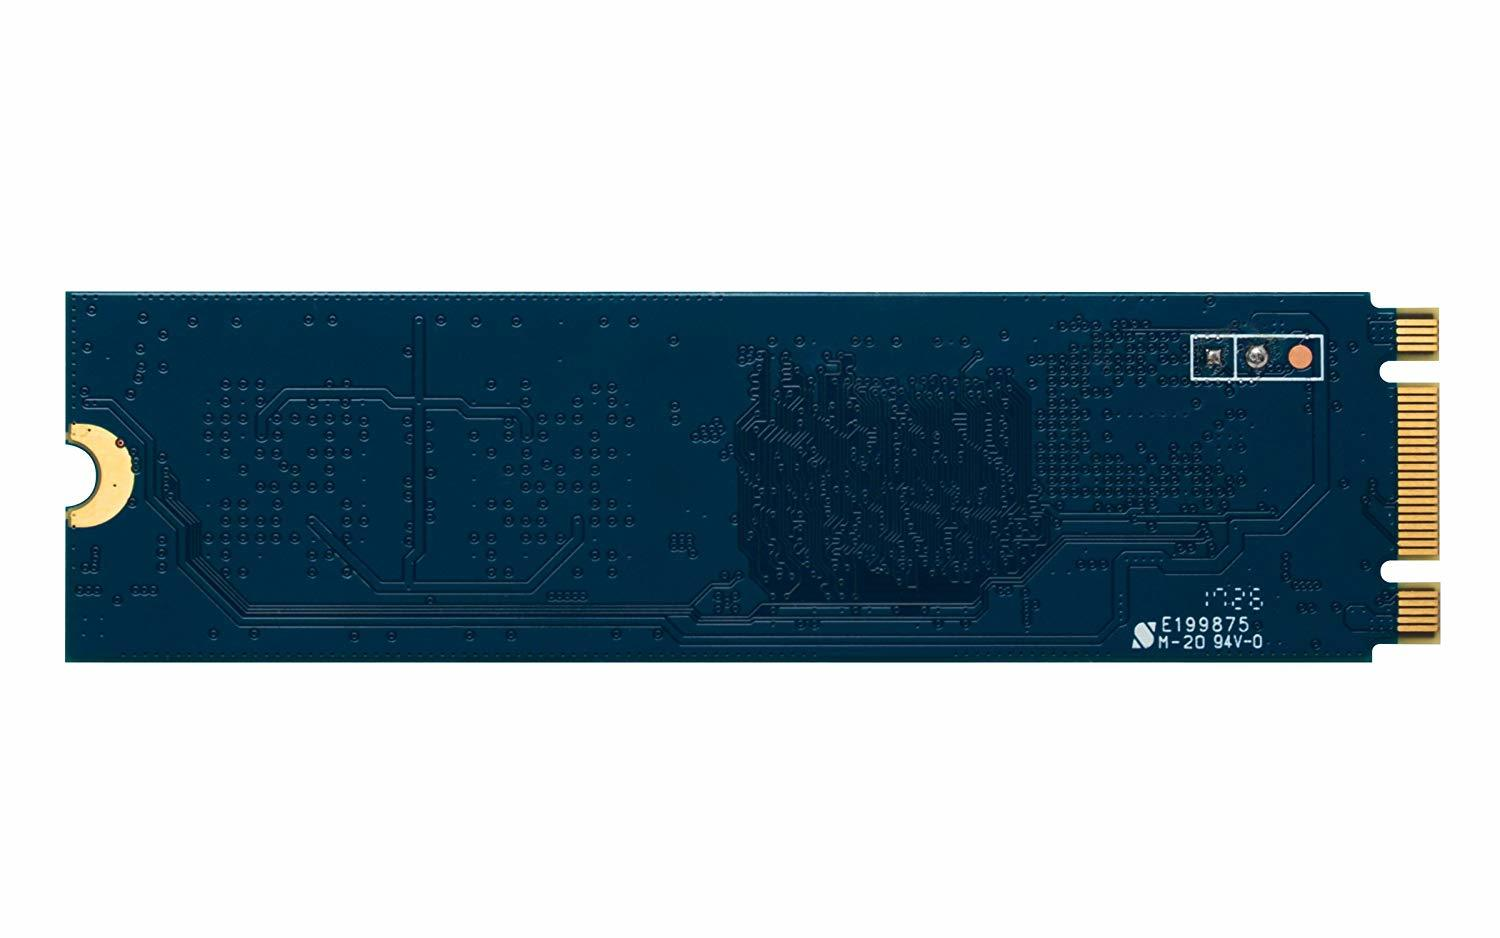 Kingston 240GB SSD Now UV500 M.2 SSD image